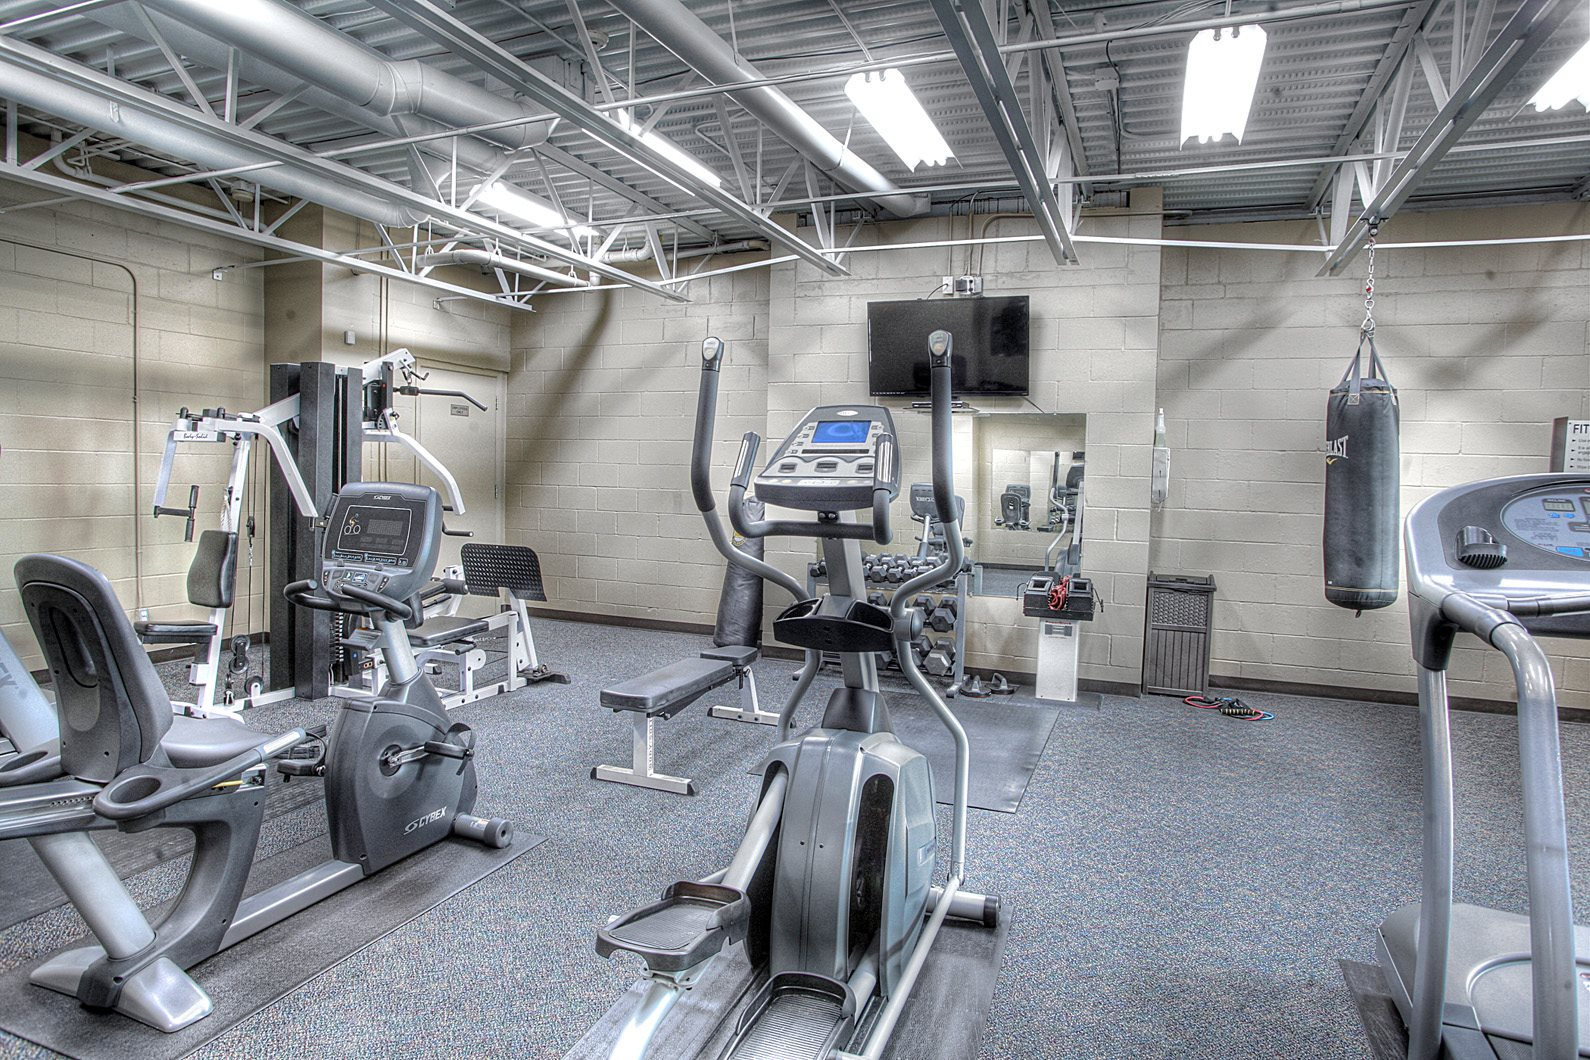 24 Hour Fitness Facility at Briar Hills, Omaha,Nebraska